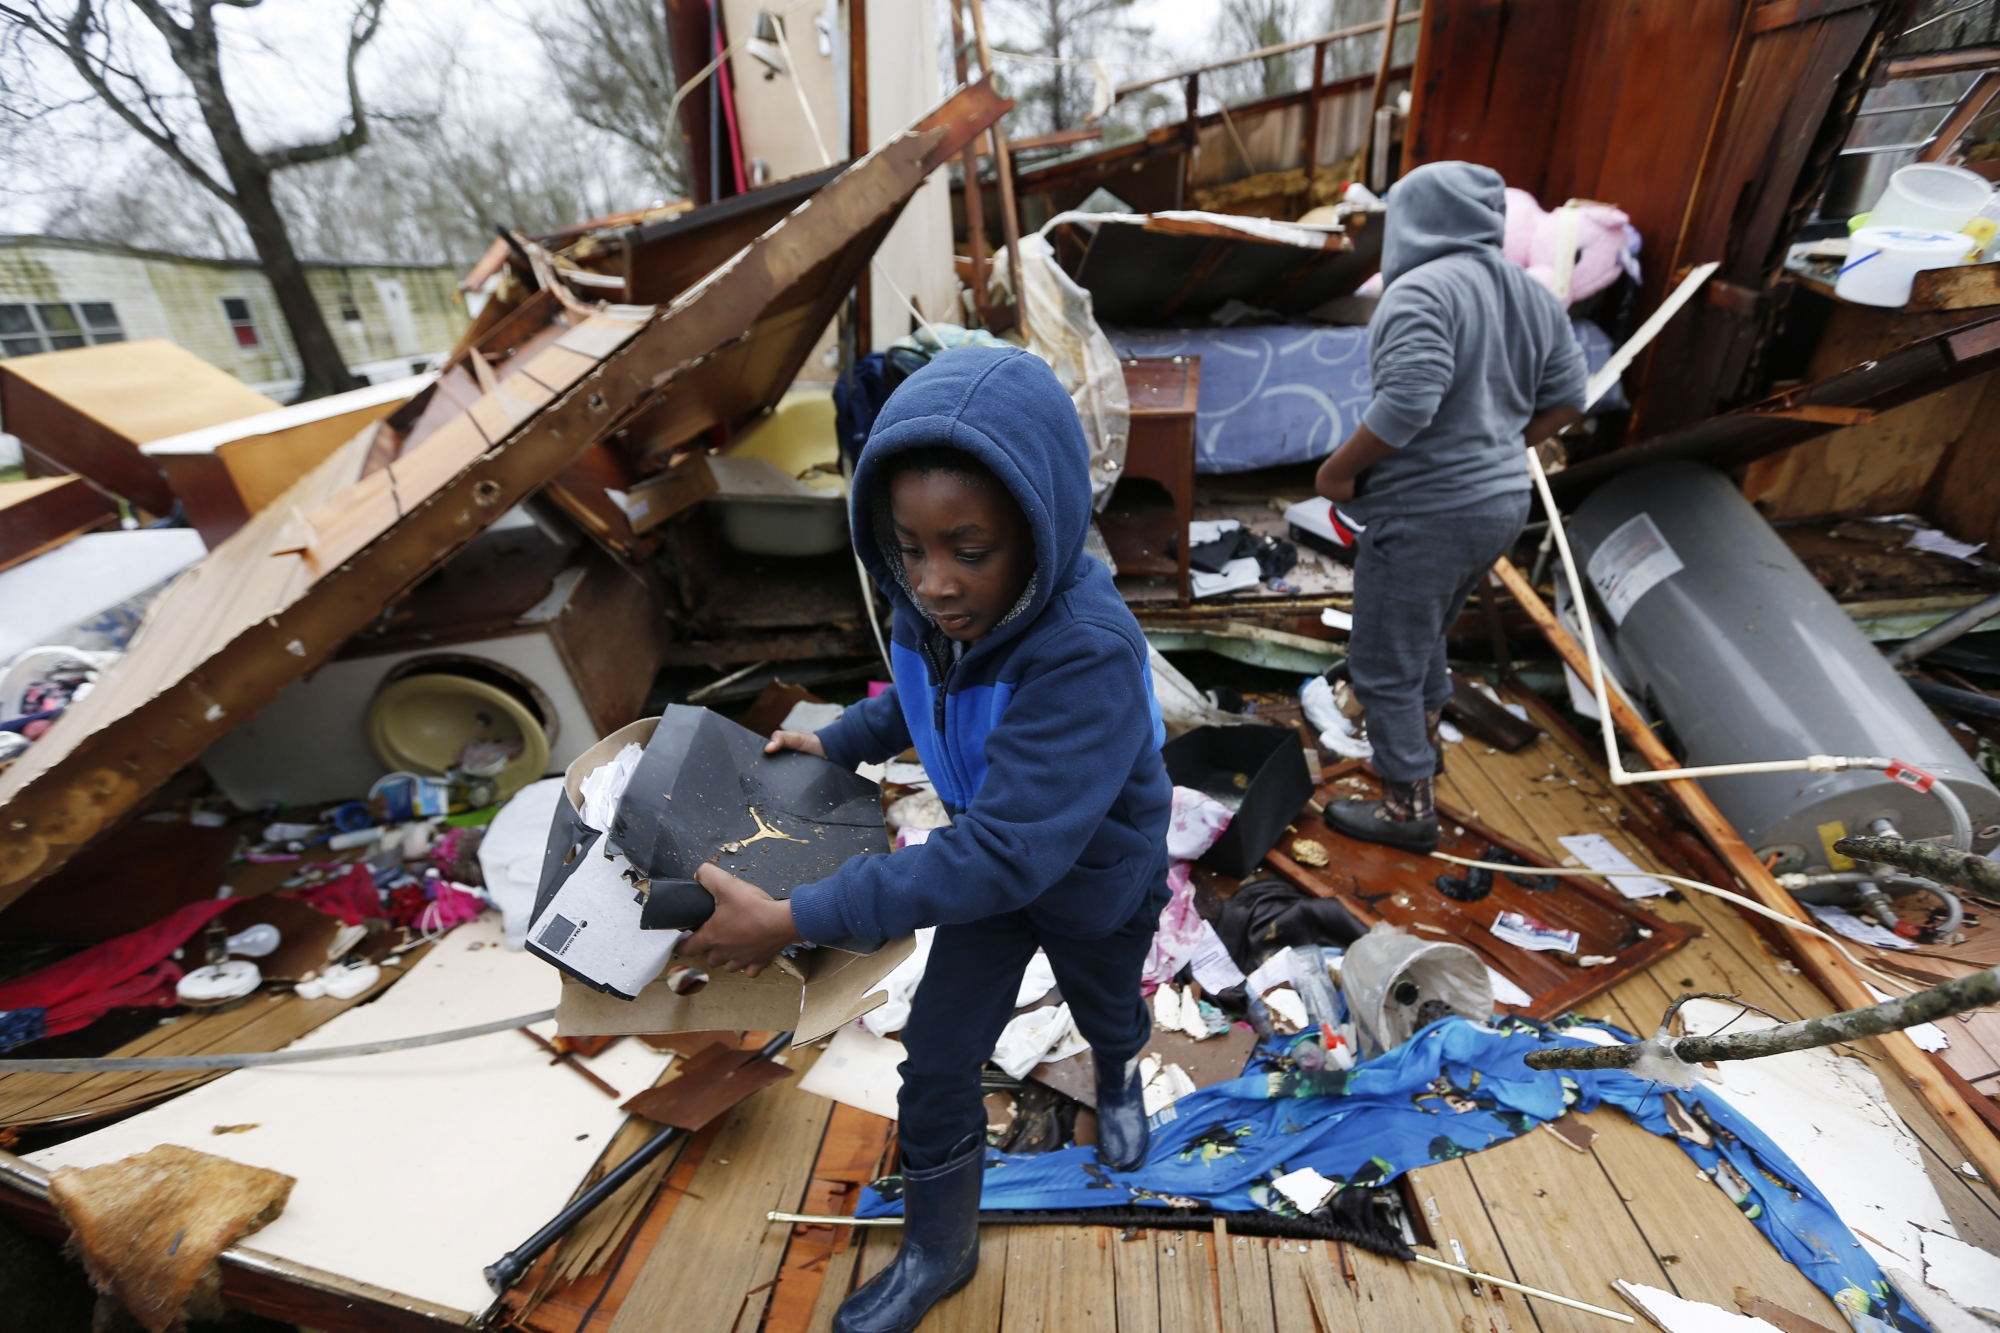 Bad Weather Moves Into Eastern States 5 Dead In South Wtop